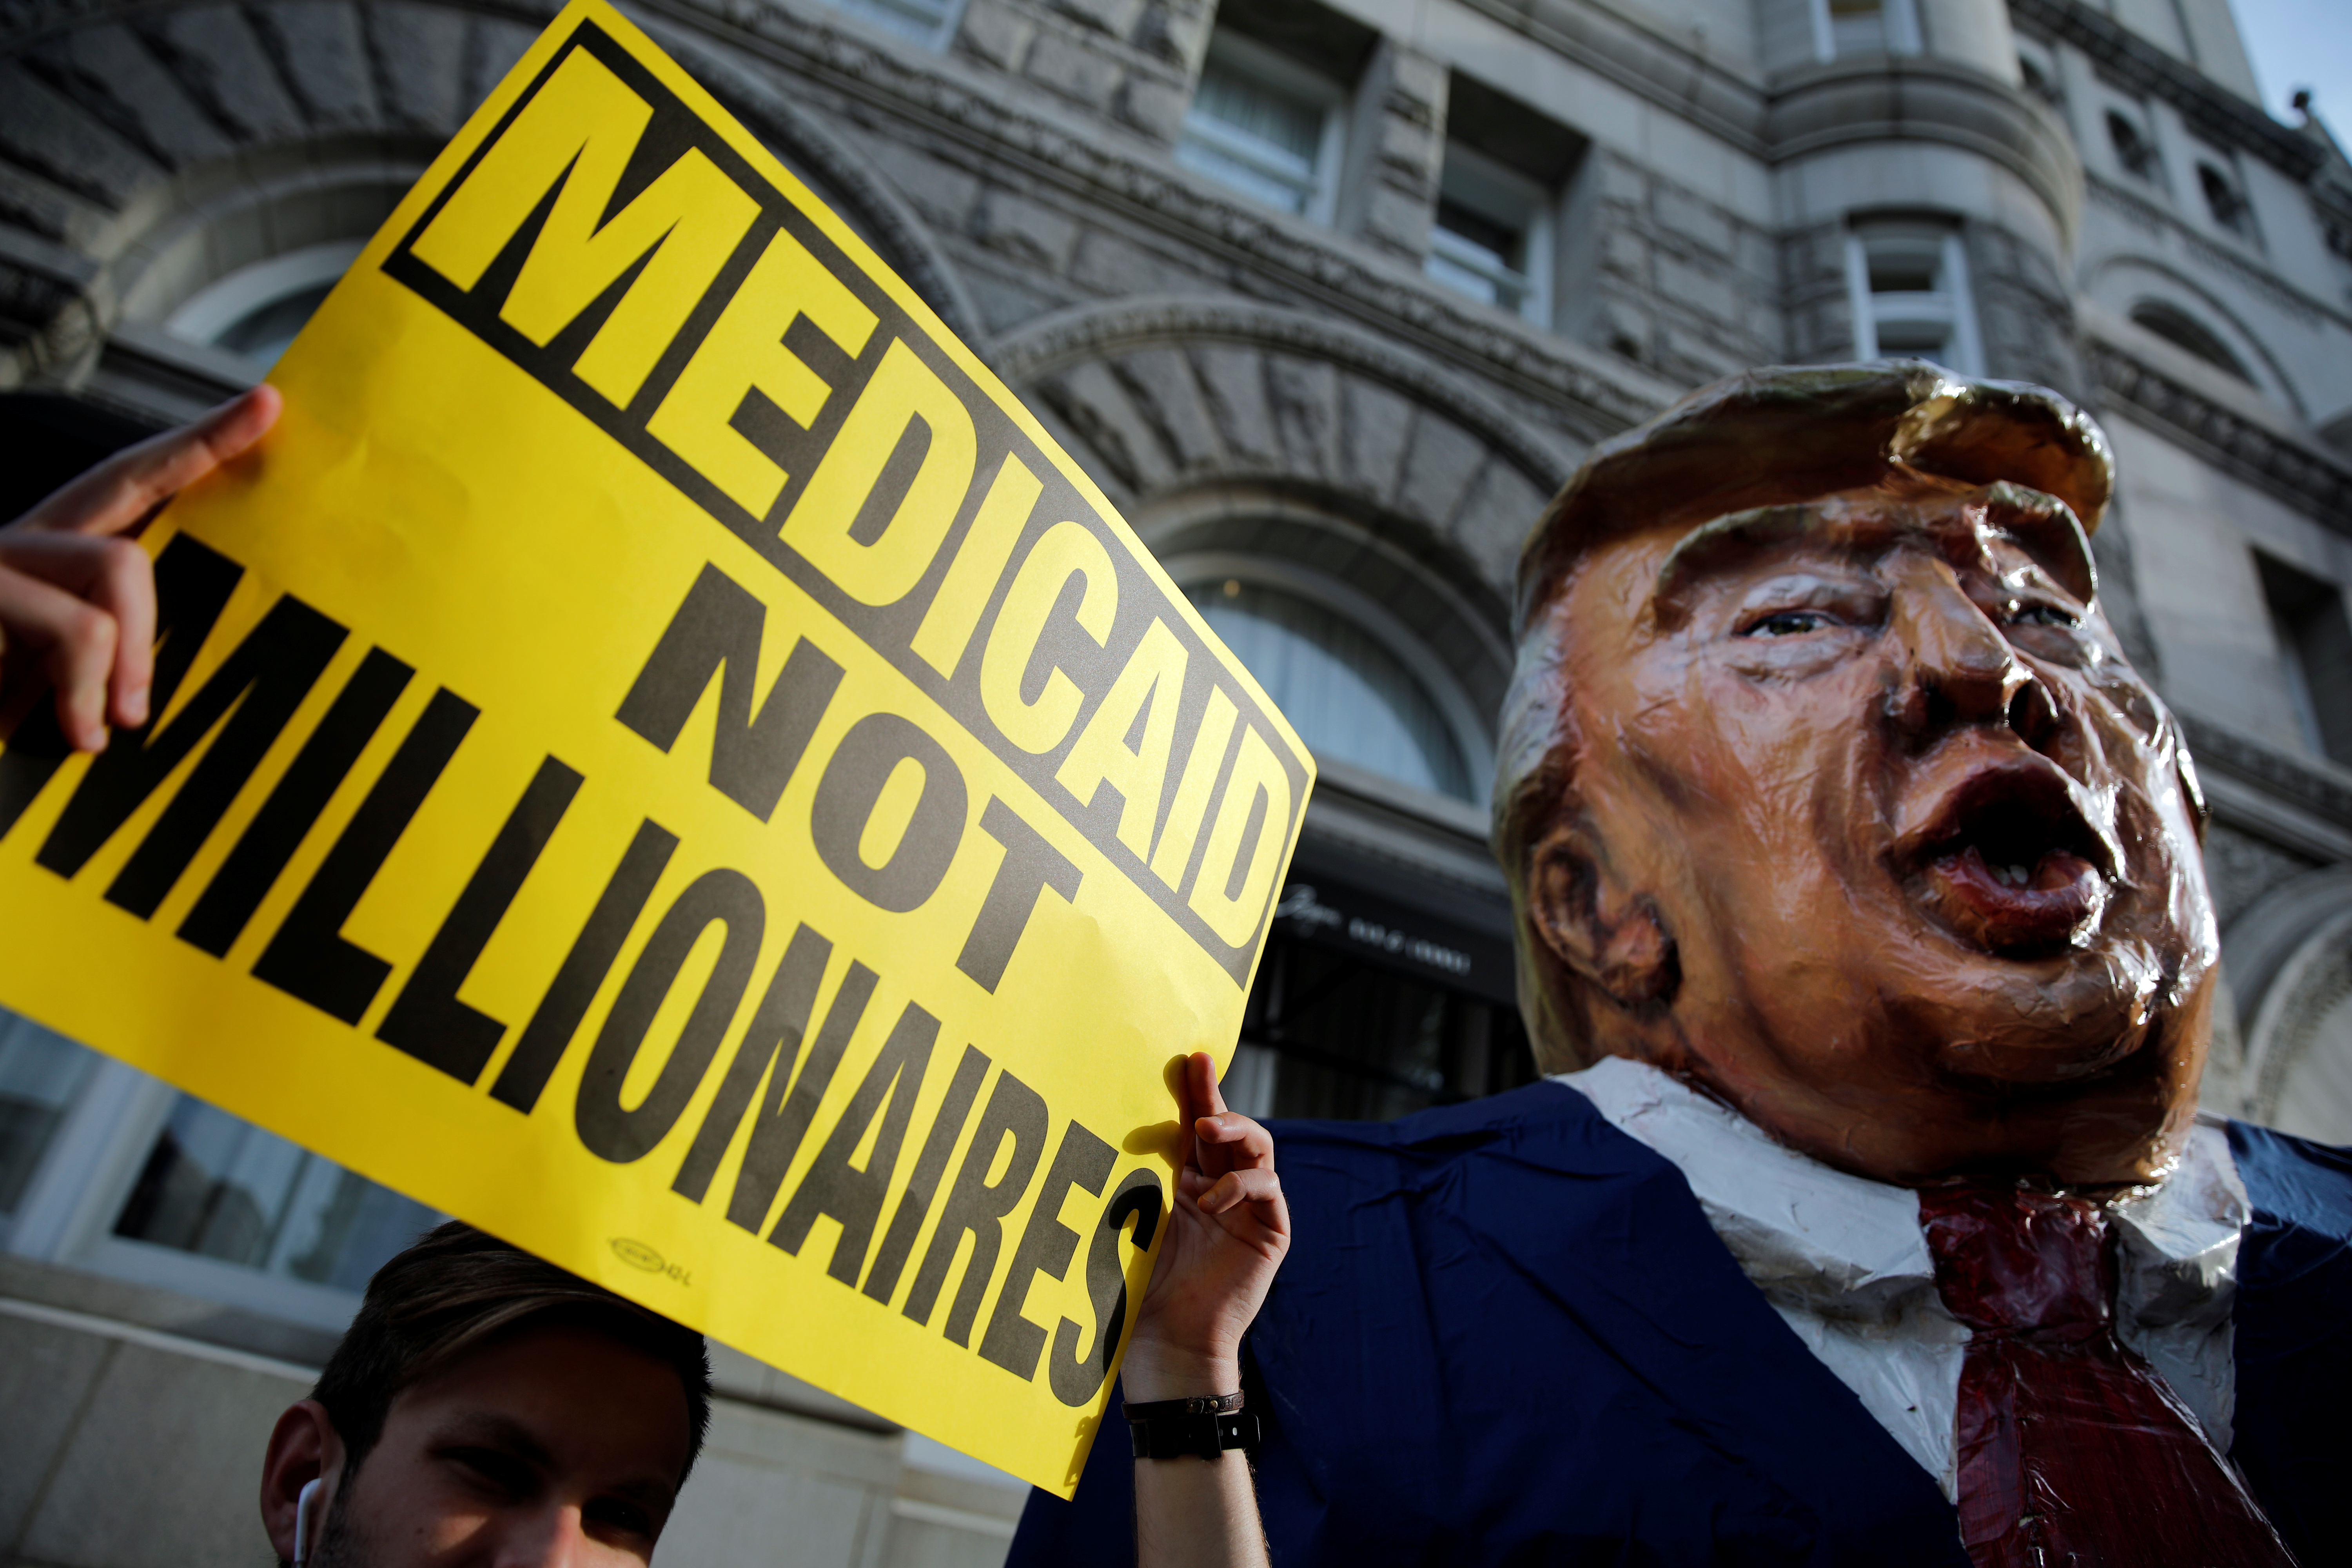 A puppet of U.S. President Donald Trump is seen as protesters gather outside Trump International Hotel in downtown Washington on June 28, 2017.